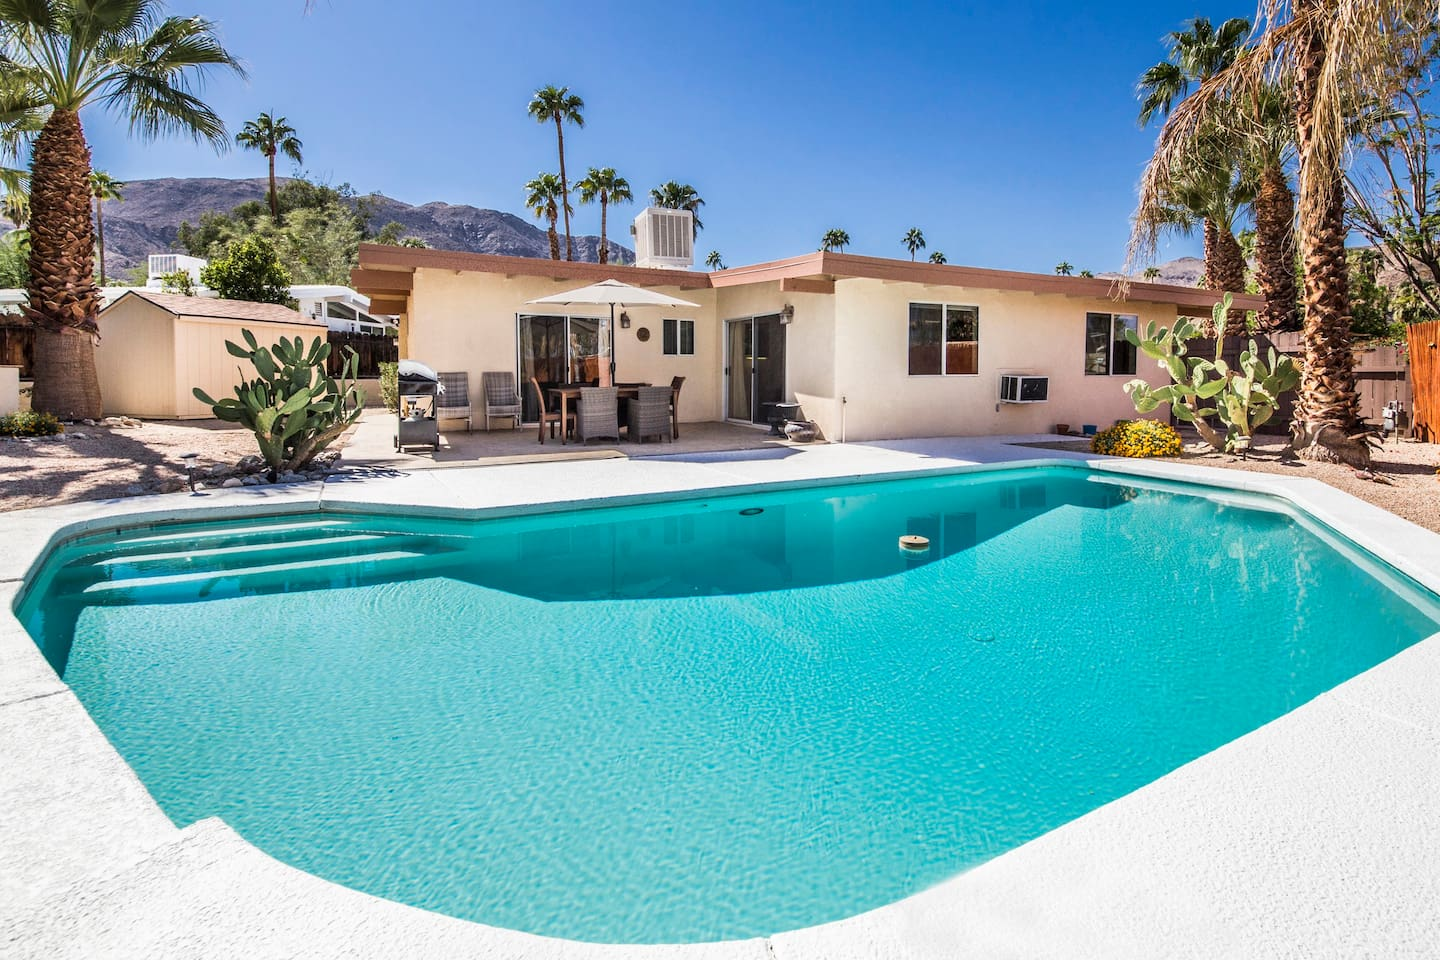 Relax pool side in tranquil setting surrounded by gorgeous panoramic mountain views